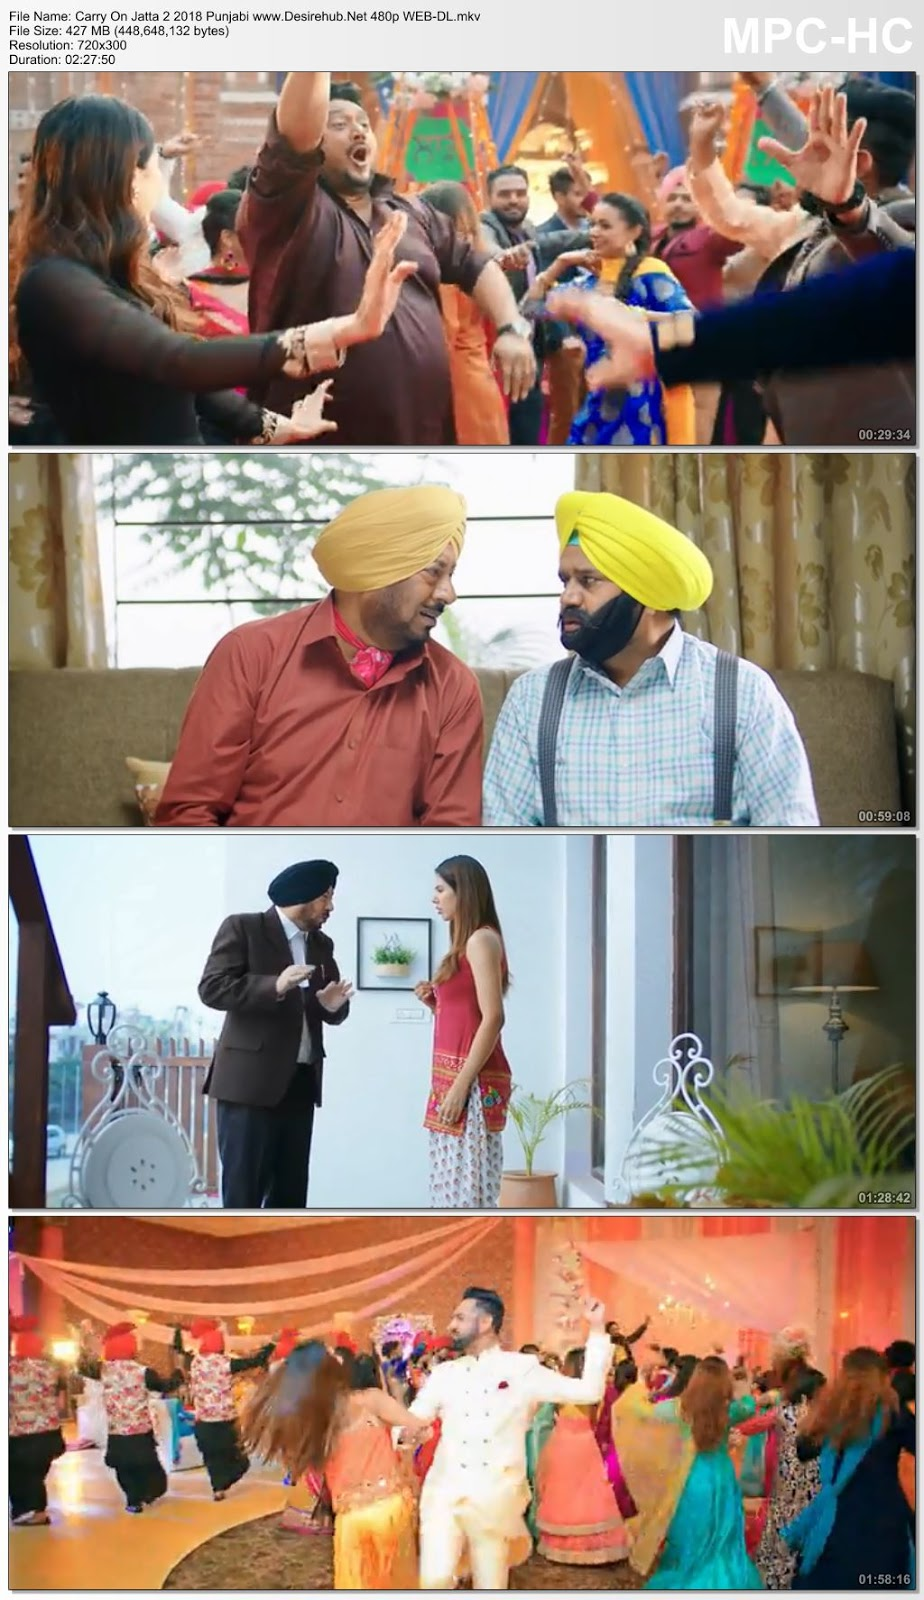 Carry On Jatta 2 (2018) Punjabi 480p WEB-DL 400MB Desirehub